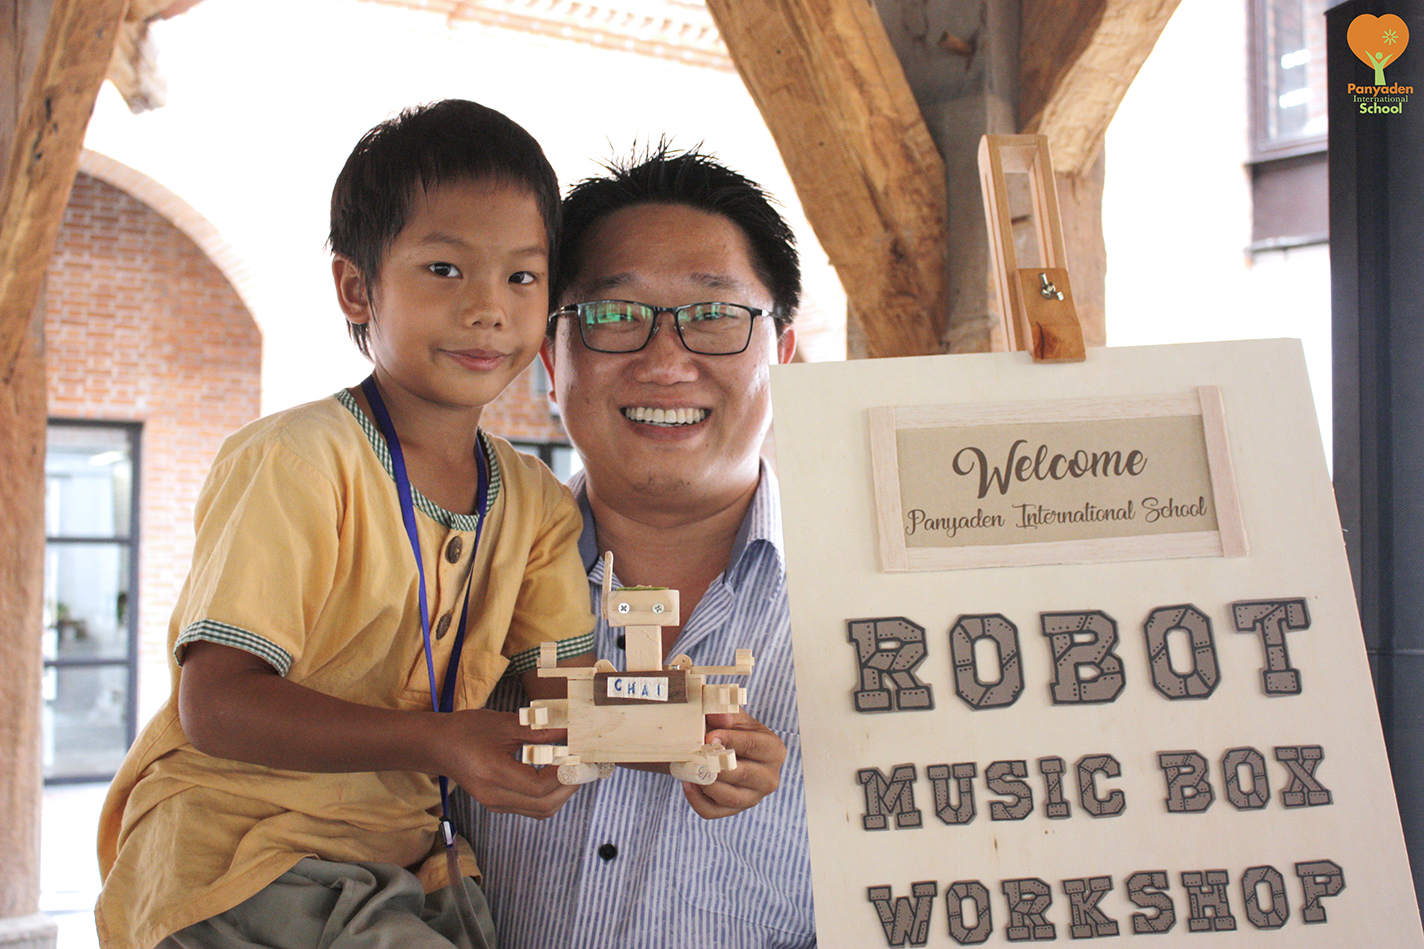 Panyaden Year 3 music box workshop - student with owner of studio